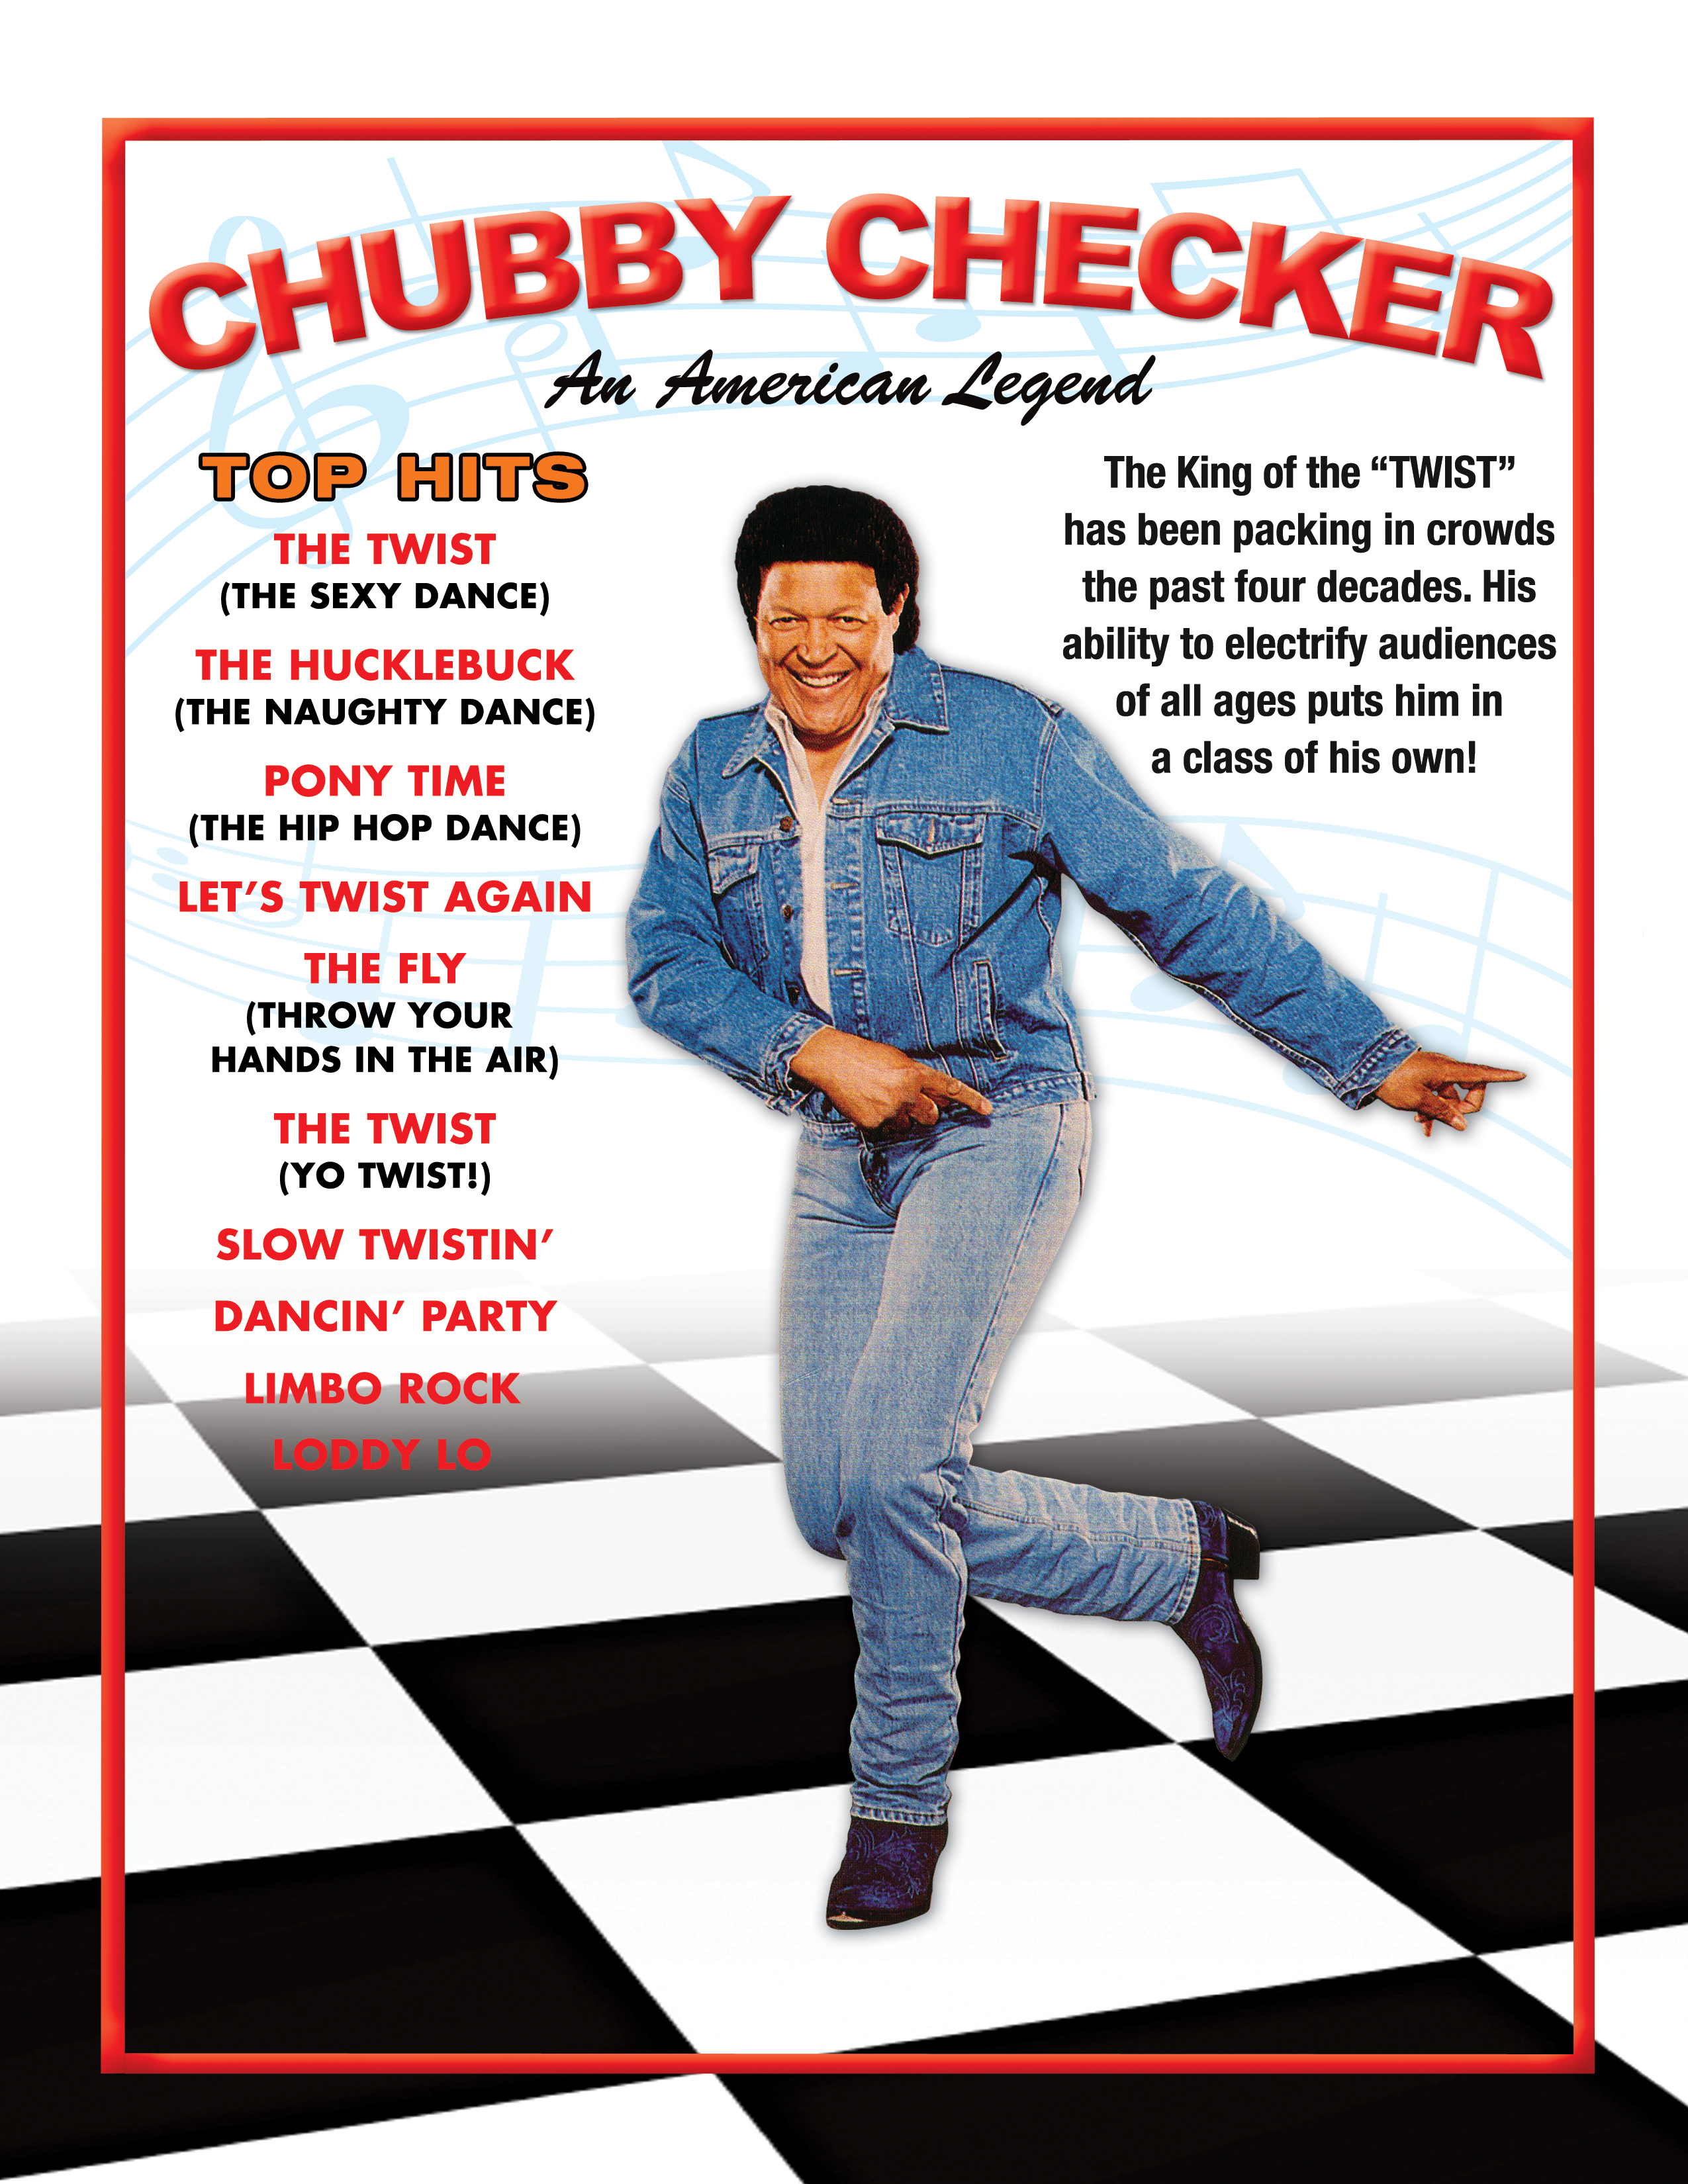 Chubby checker the huckle buck #2